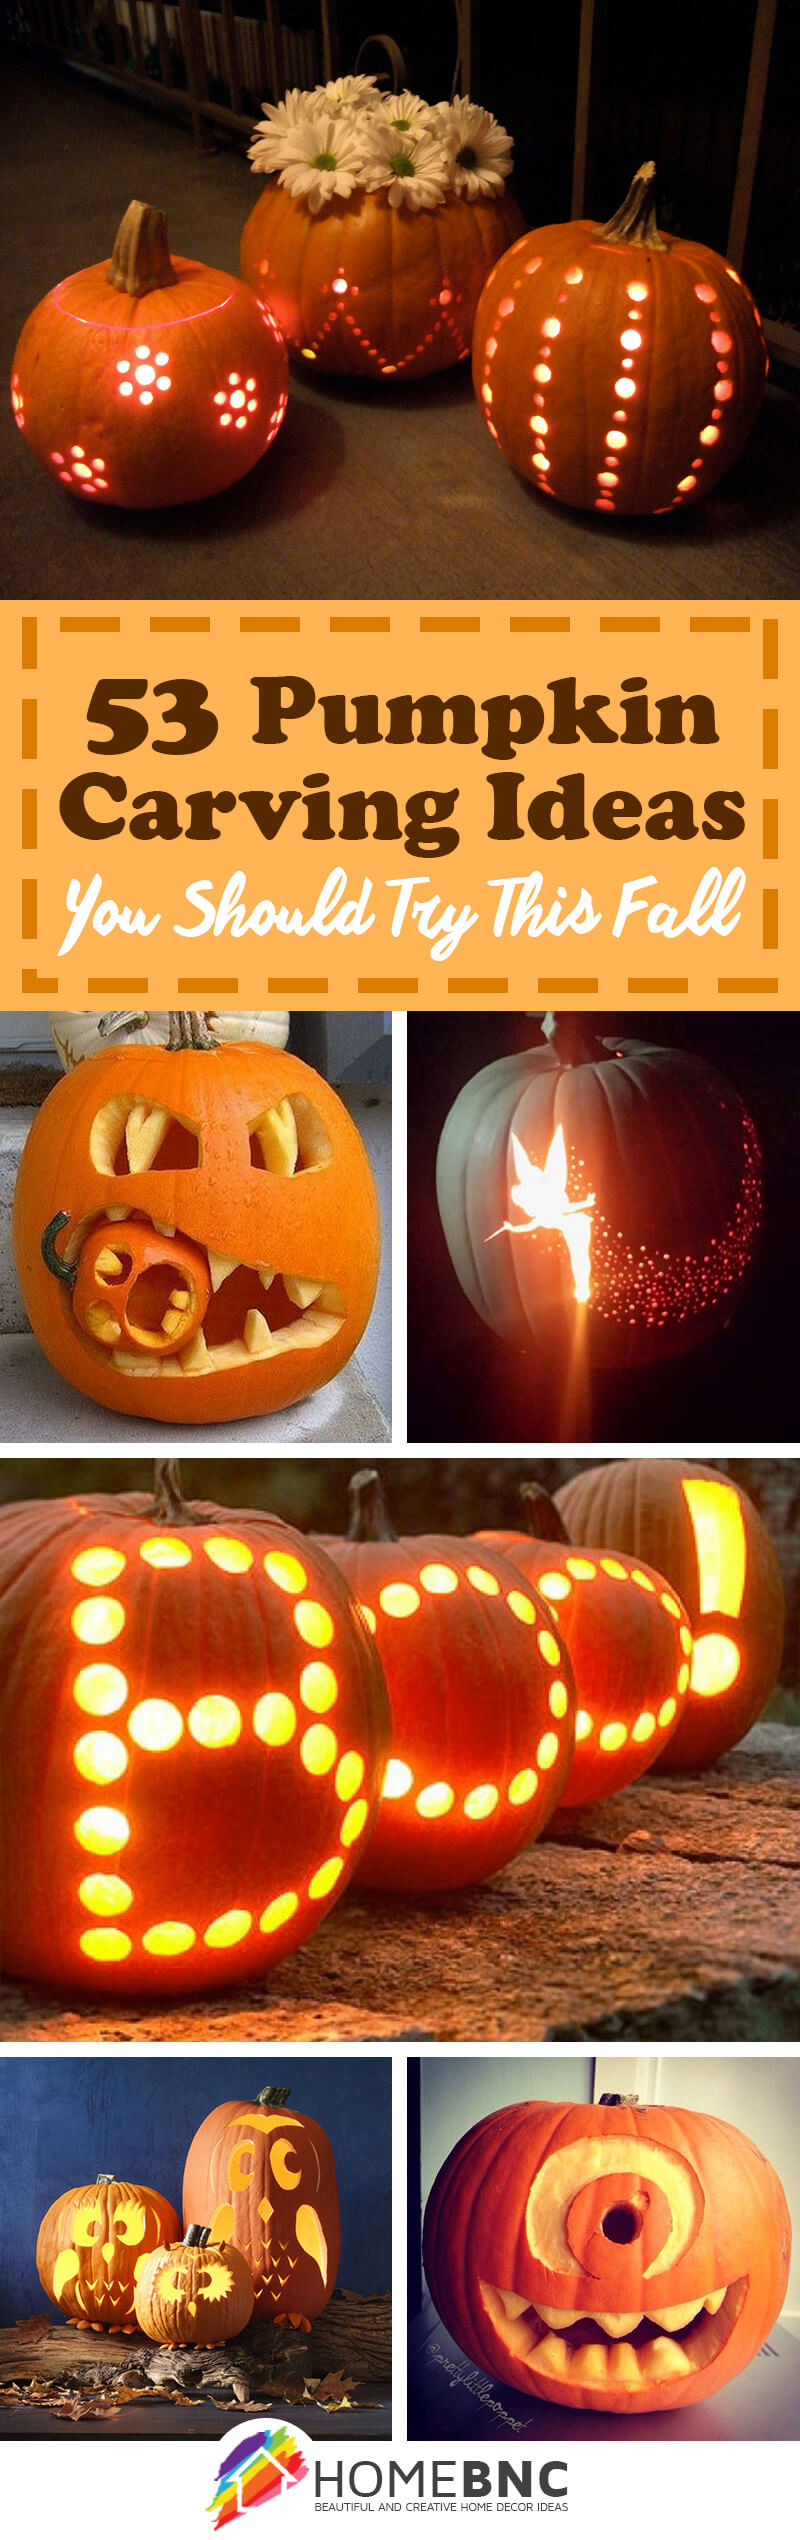 53 Best Pumpkin Carving Ideas and Designs for 2017